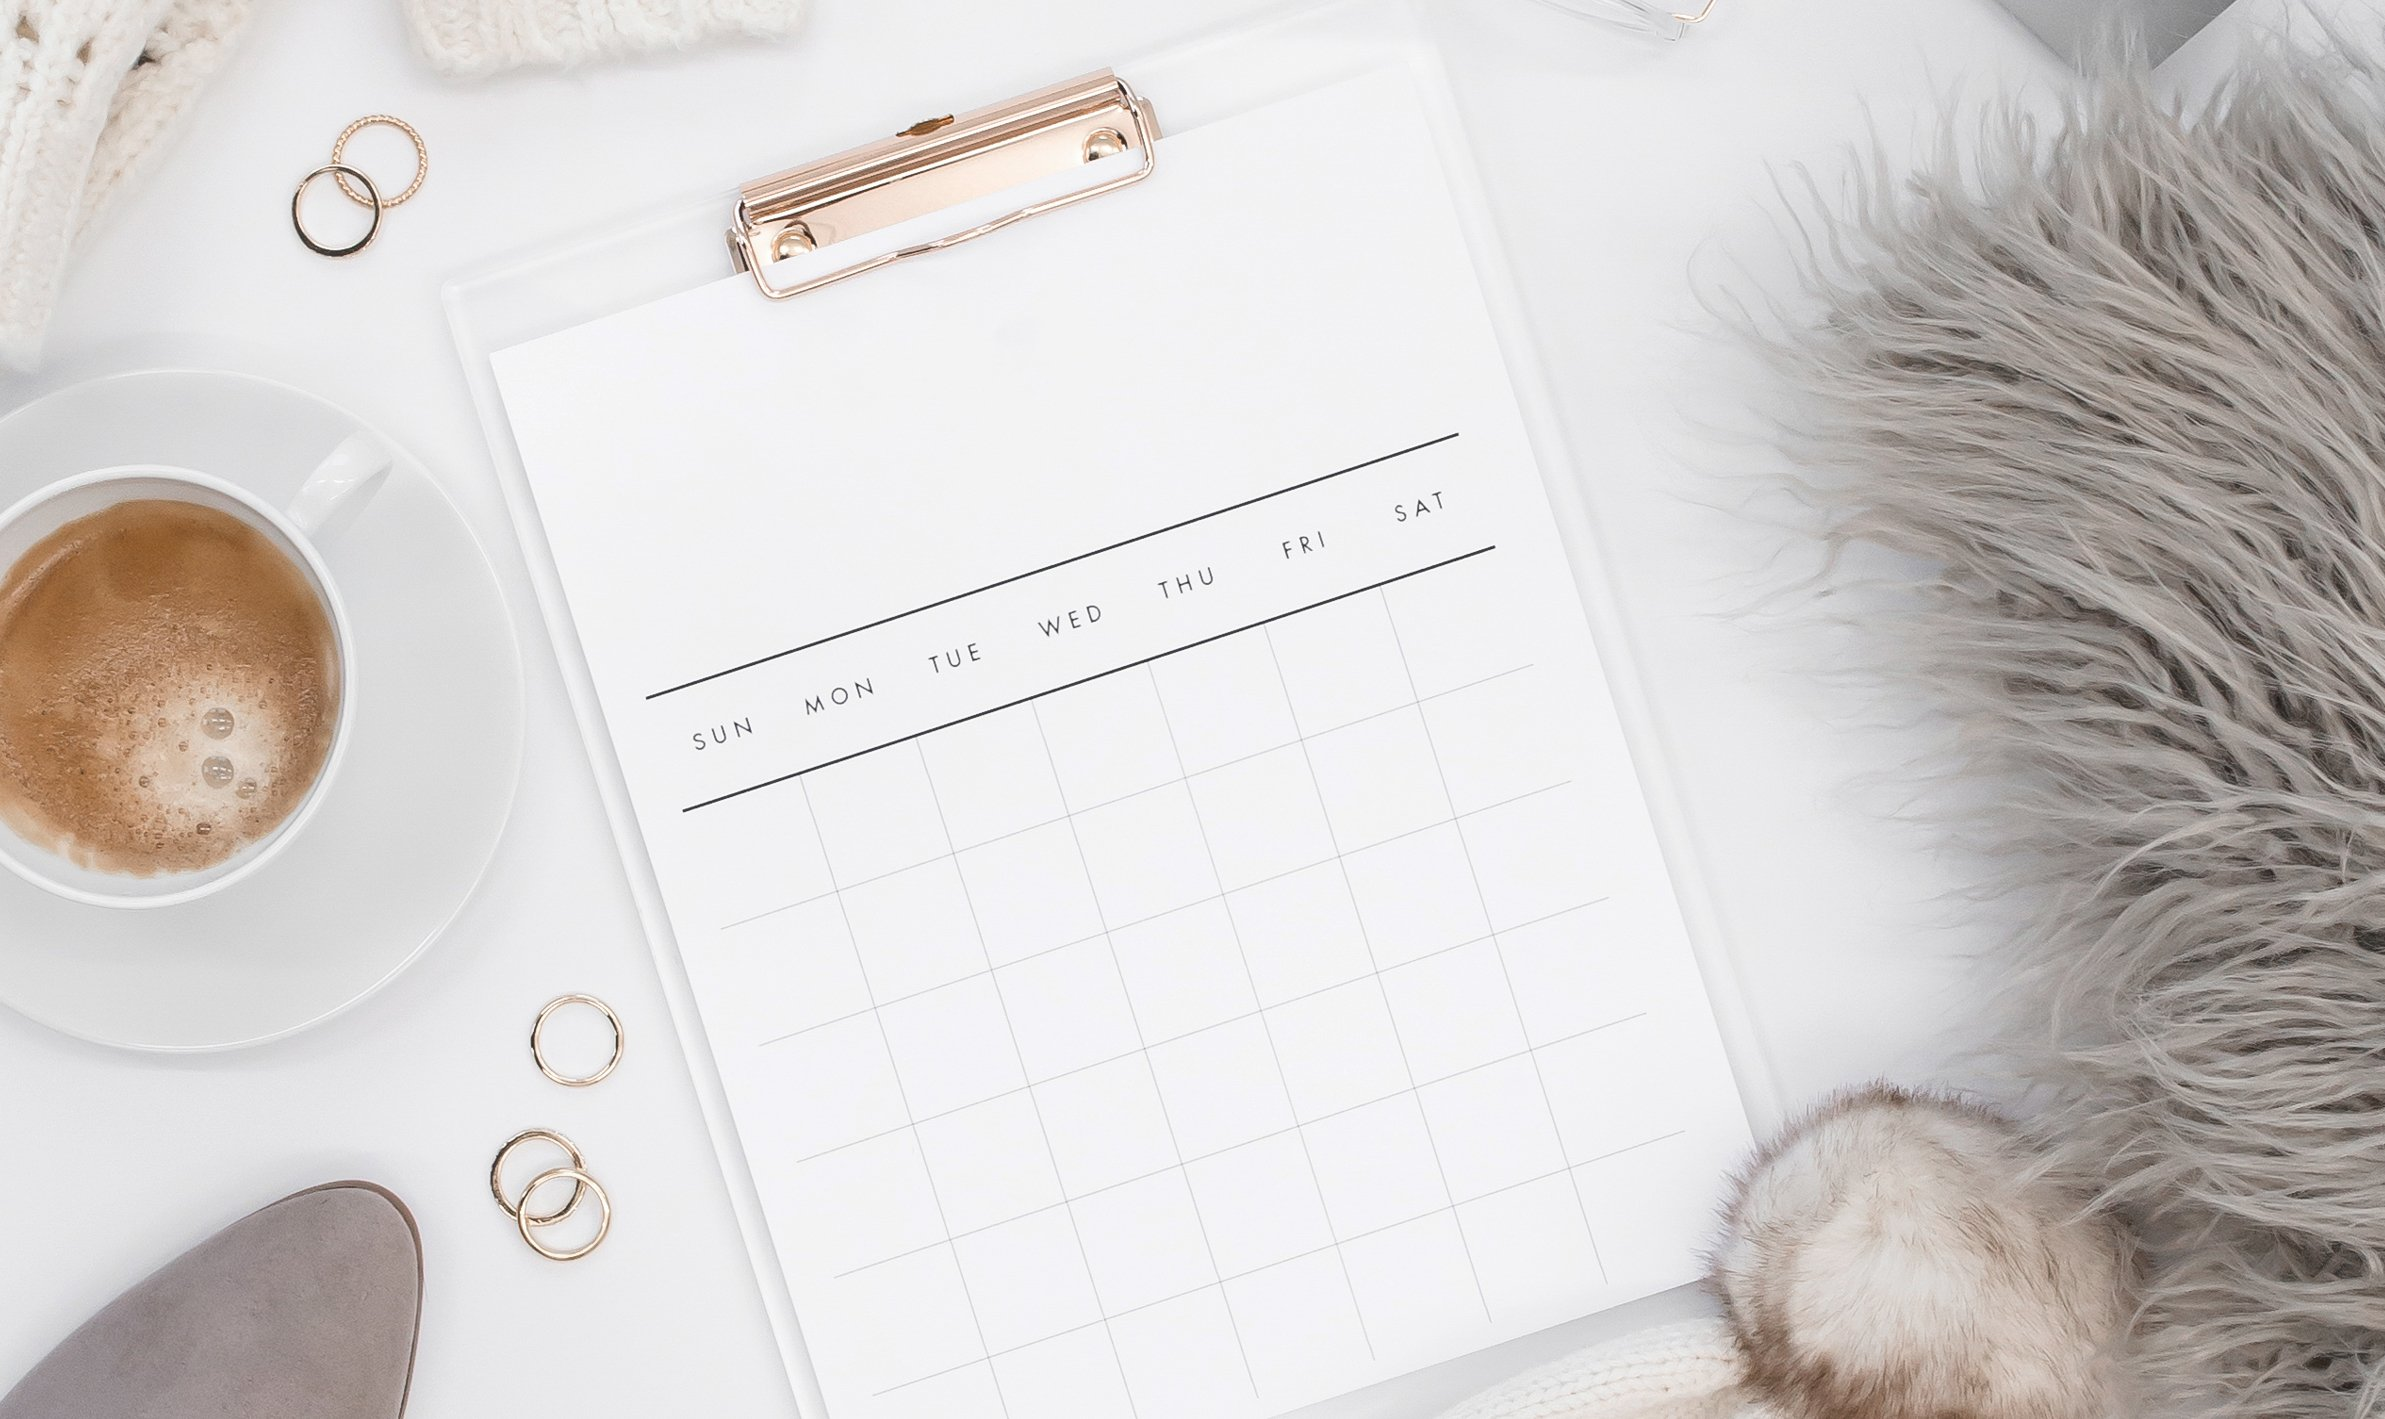 Use this step-by-step guide to create an epic content calendar for your blog that brings you oodles of traffic. #blogging